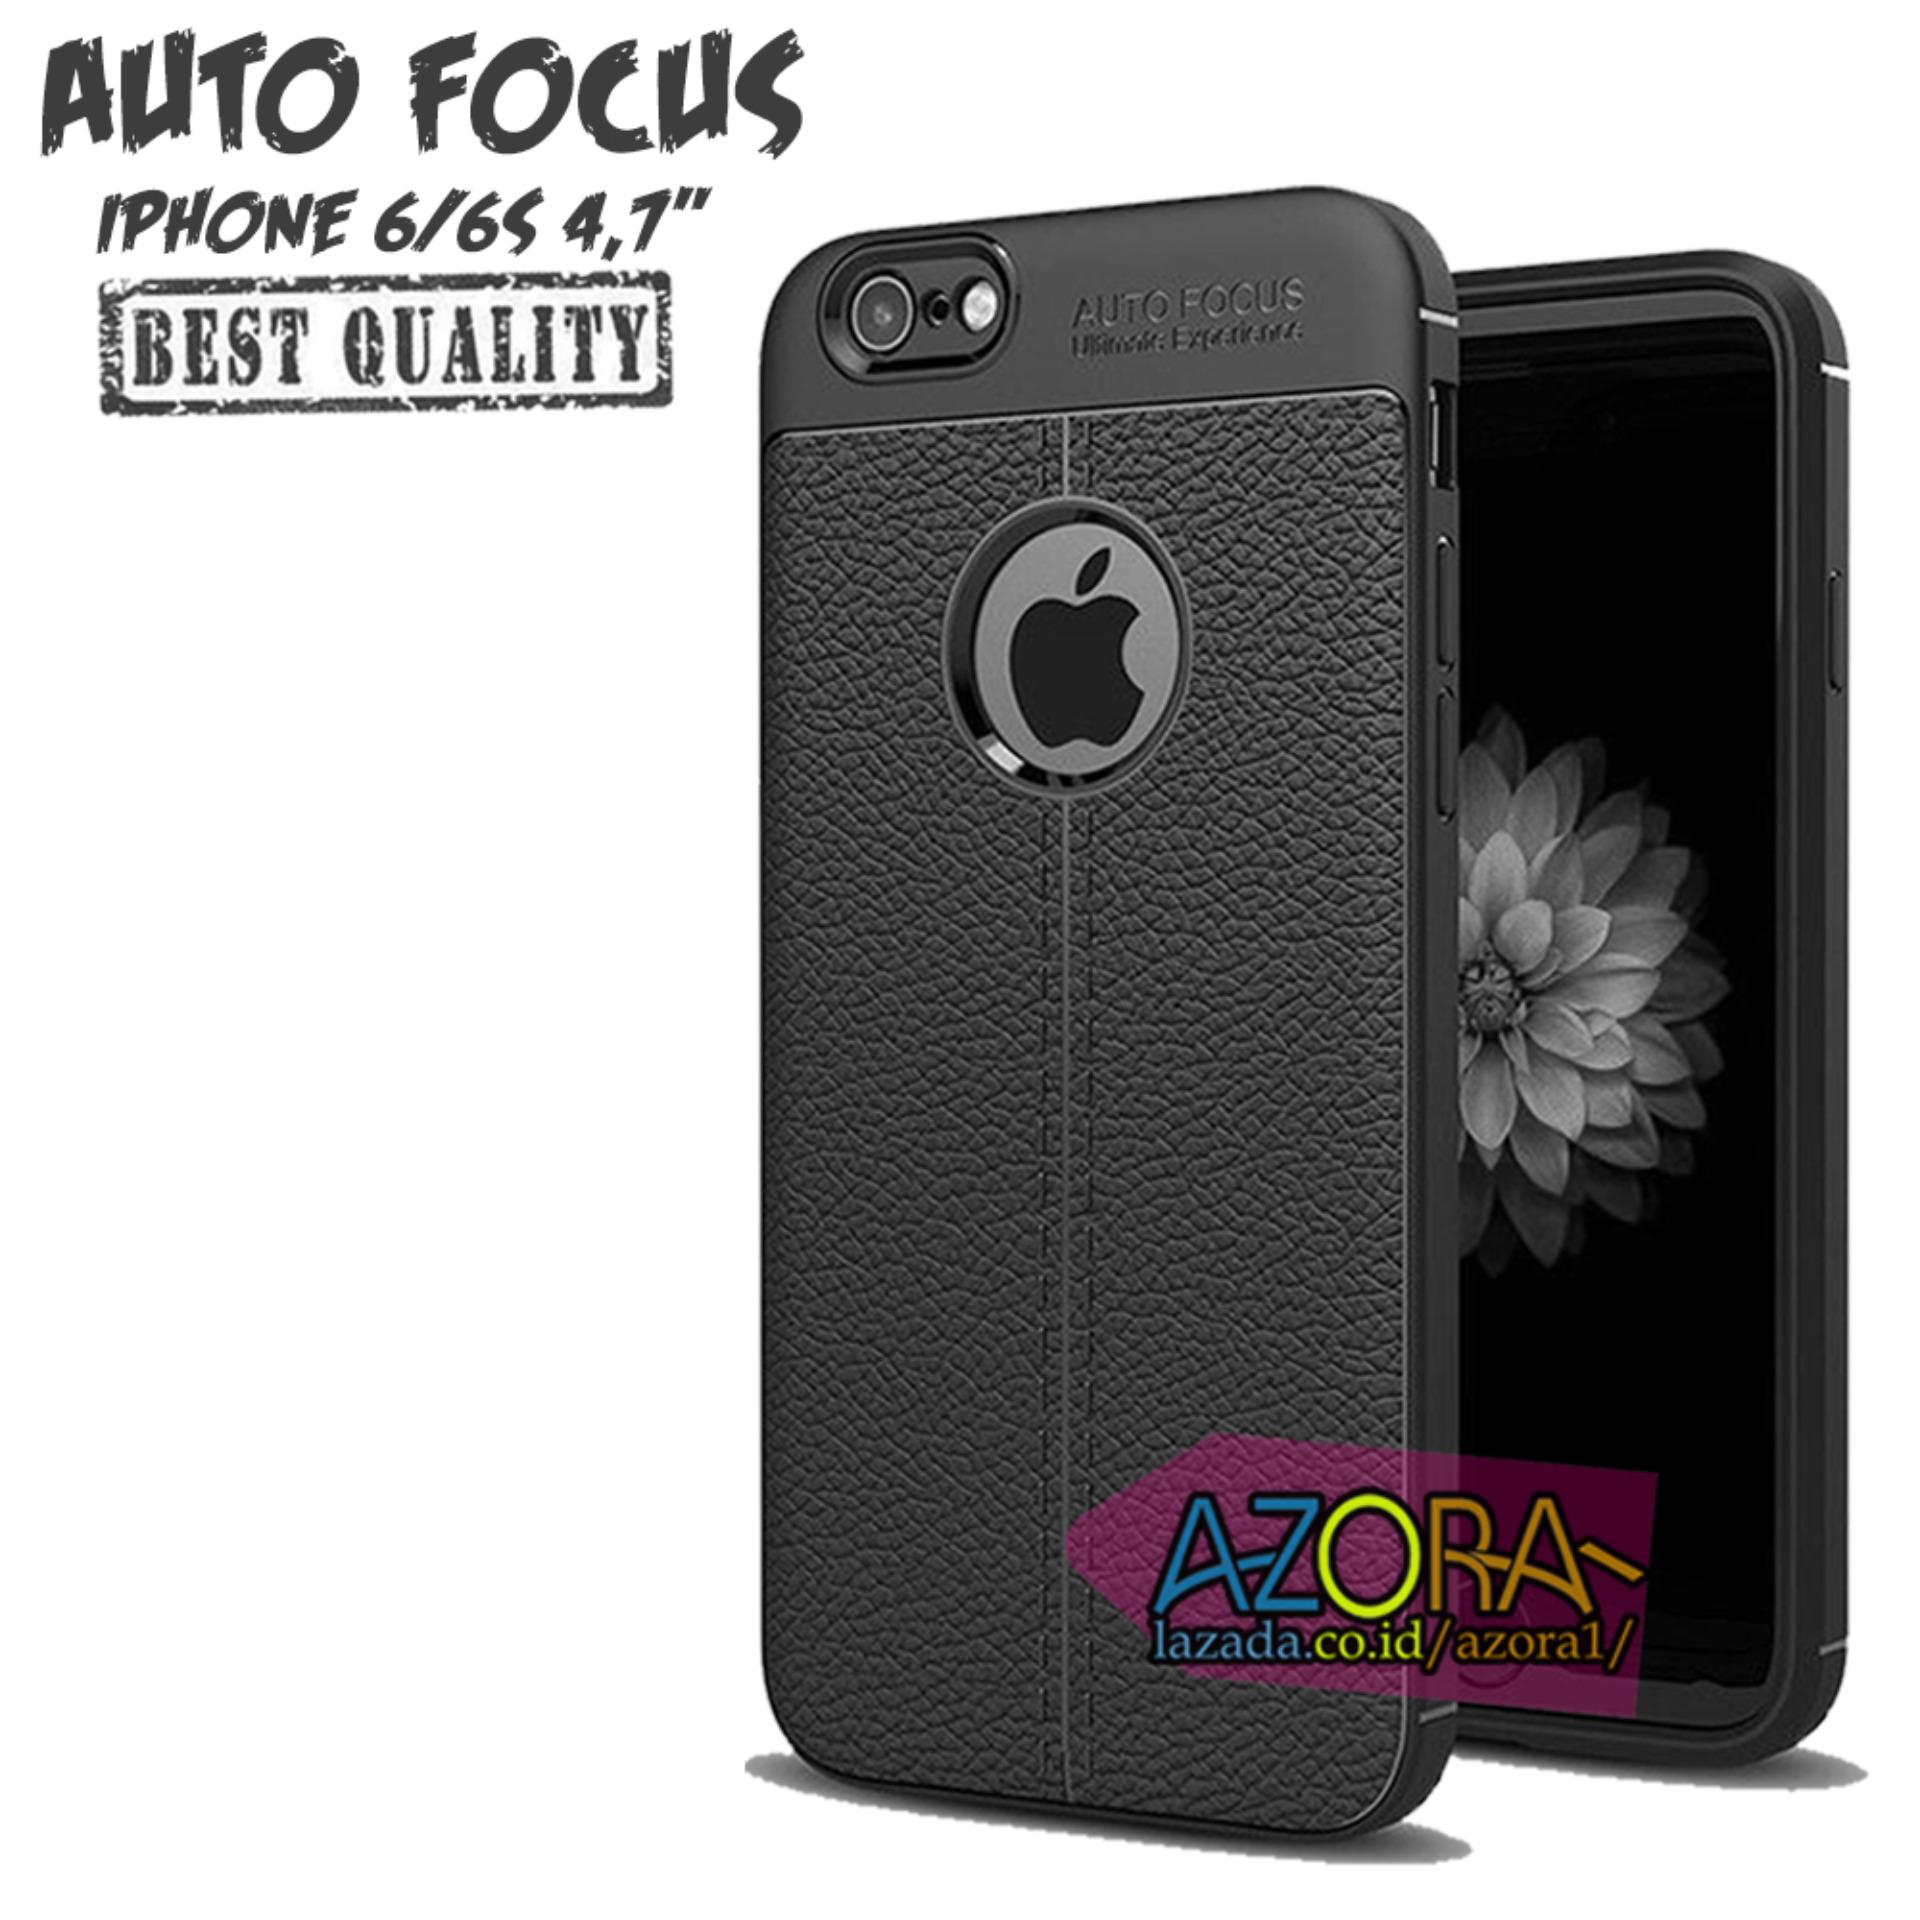 Case Auto Focus Iphone 6 / 6S ( 4.7 Inch ) Dual Camera Leather Experience Slim Ultimate